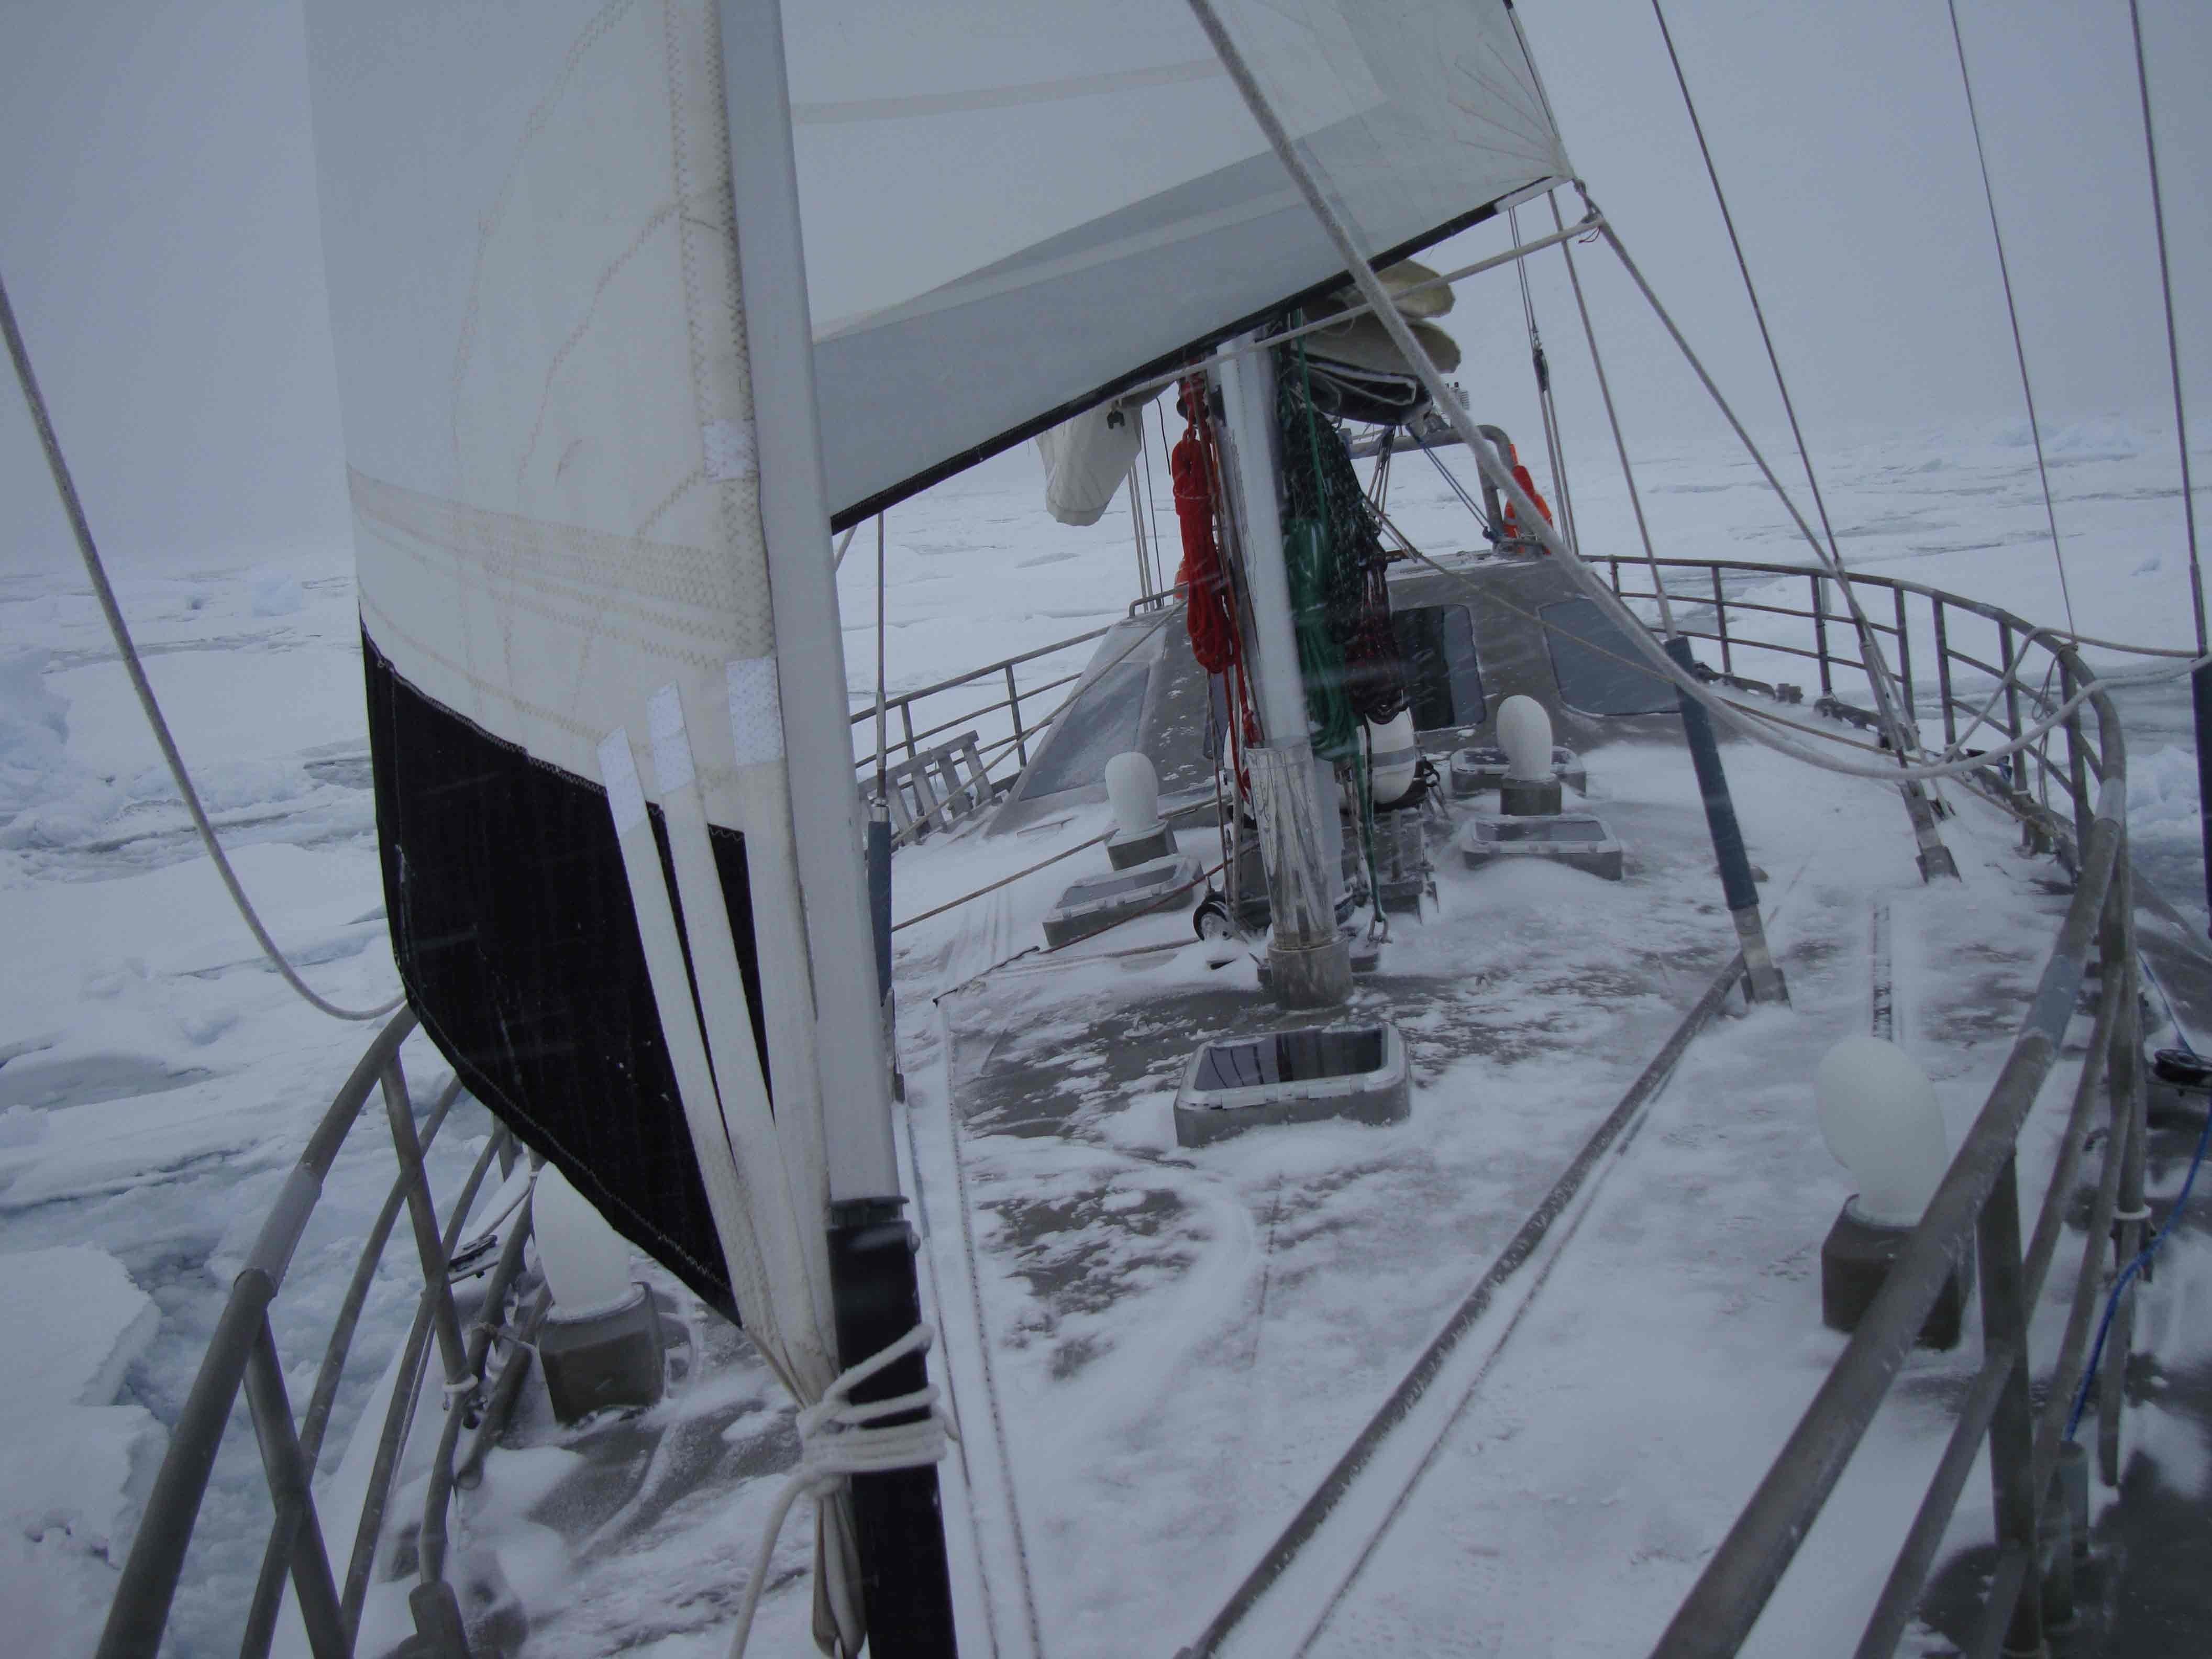 56' Arctic Sailing Research Vessel 2013 Oceanographic Polar Scientific